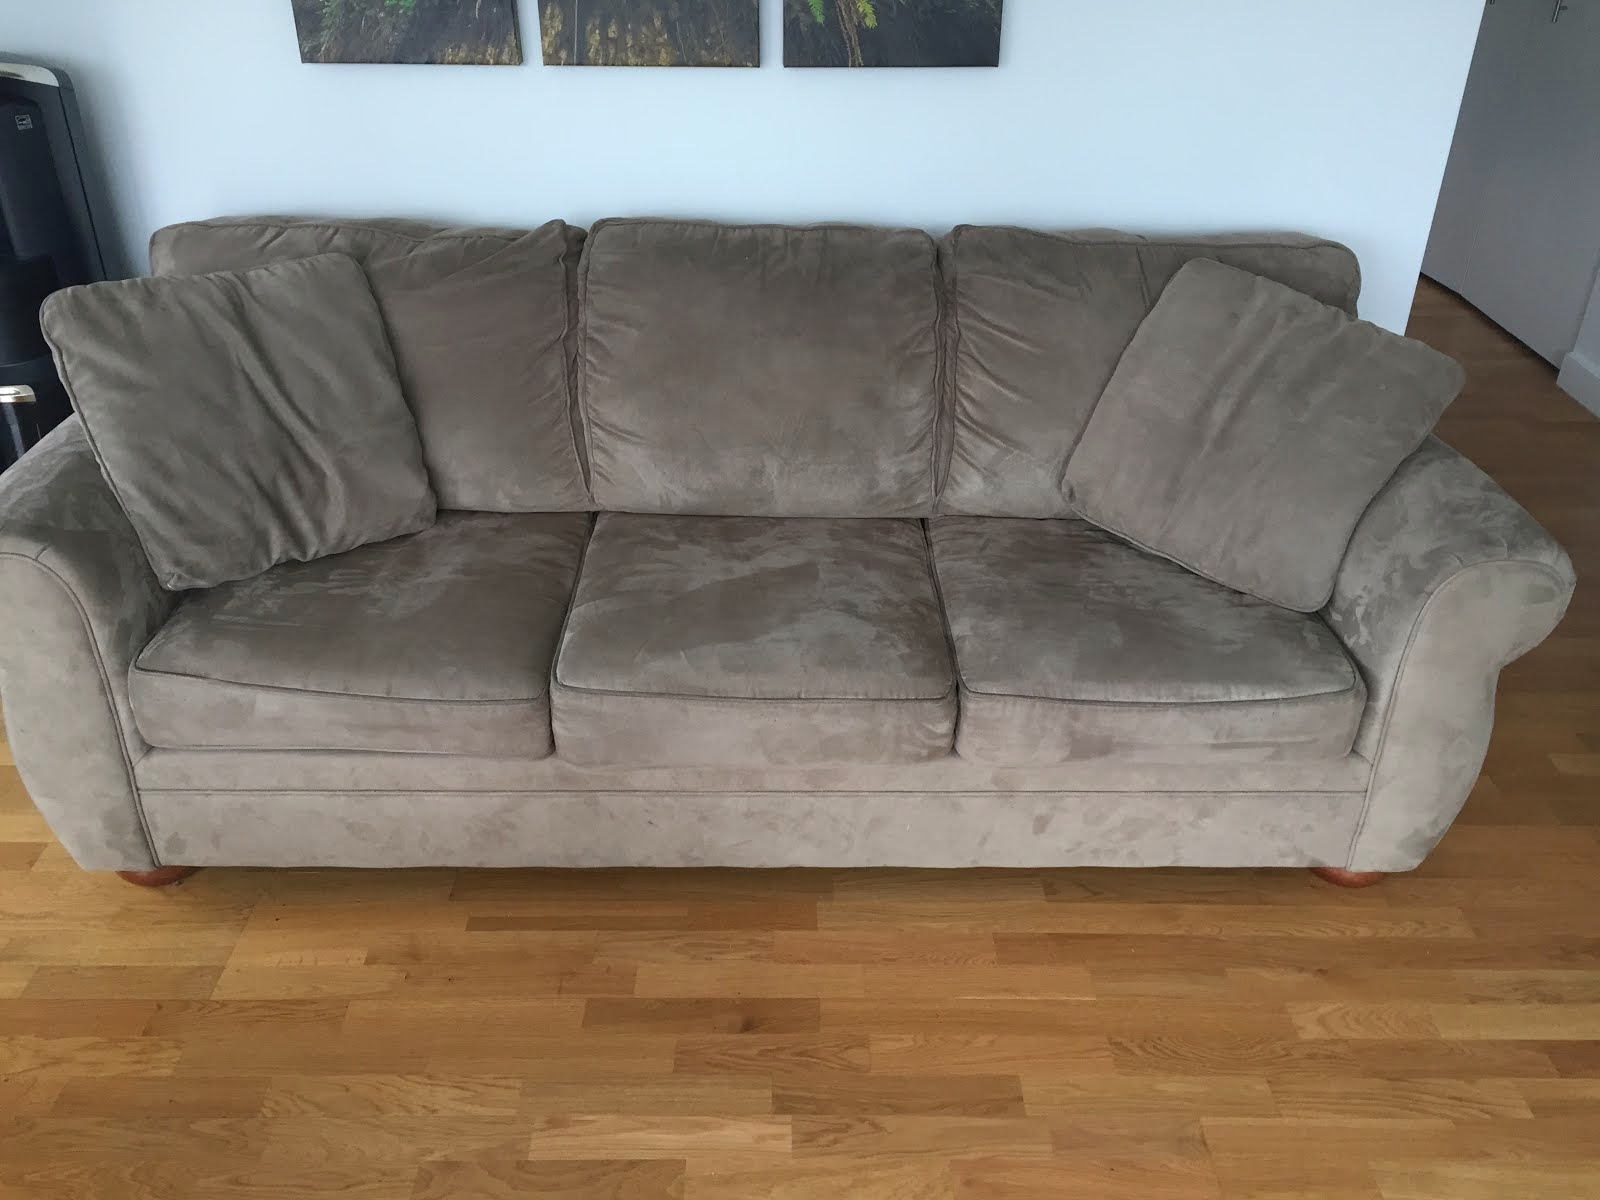 ROOSEVELT ISLAND LISTINGS For Sale Microfiber Sofa $50